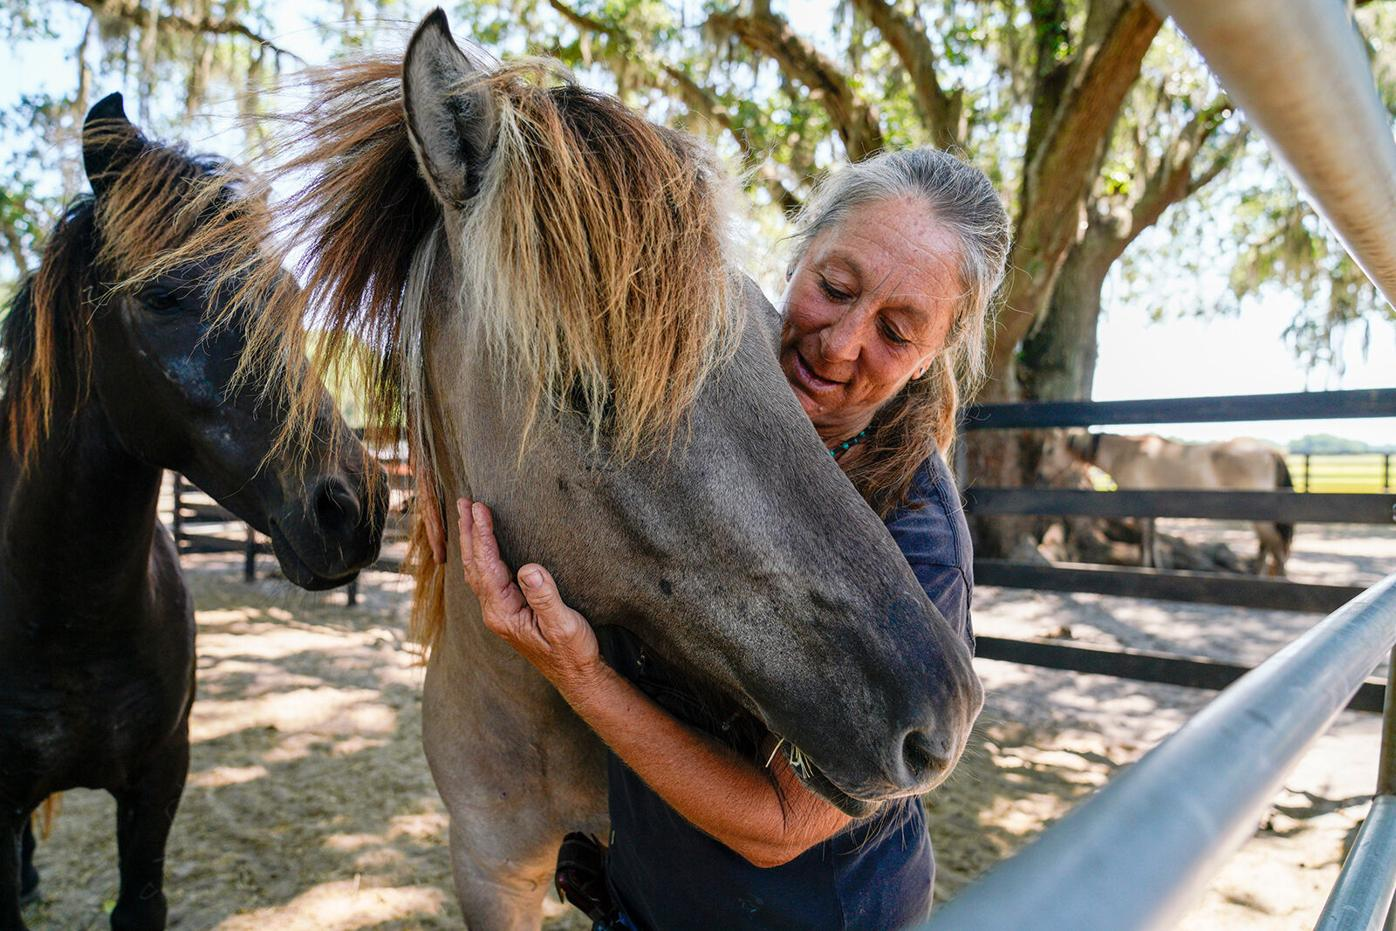 Diane Delano, founder and president at the Wild Horse Rescue Center